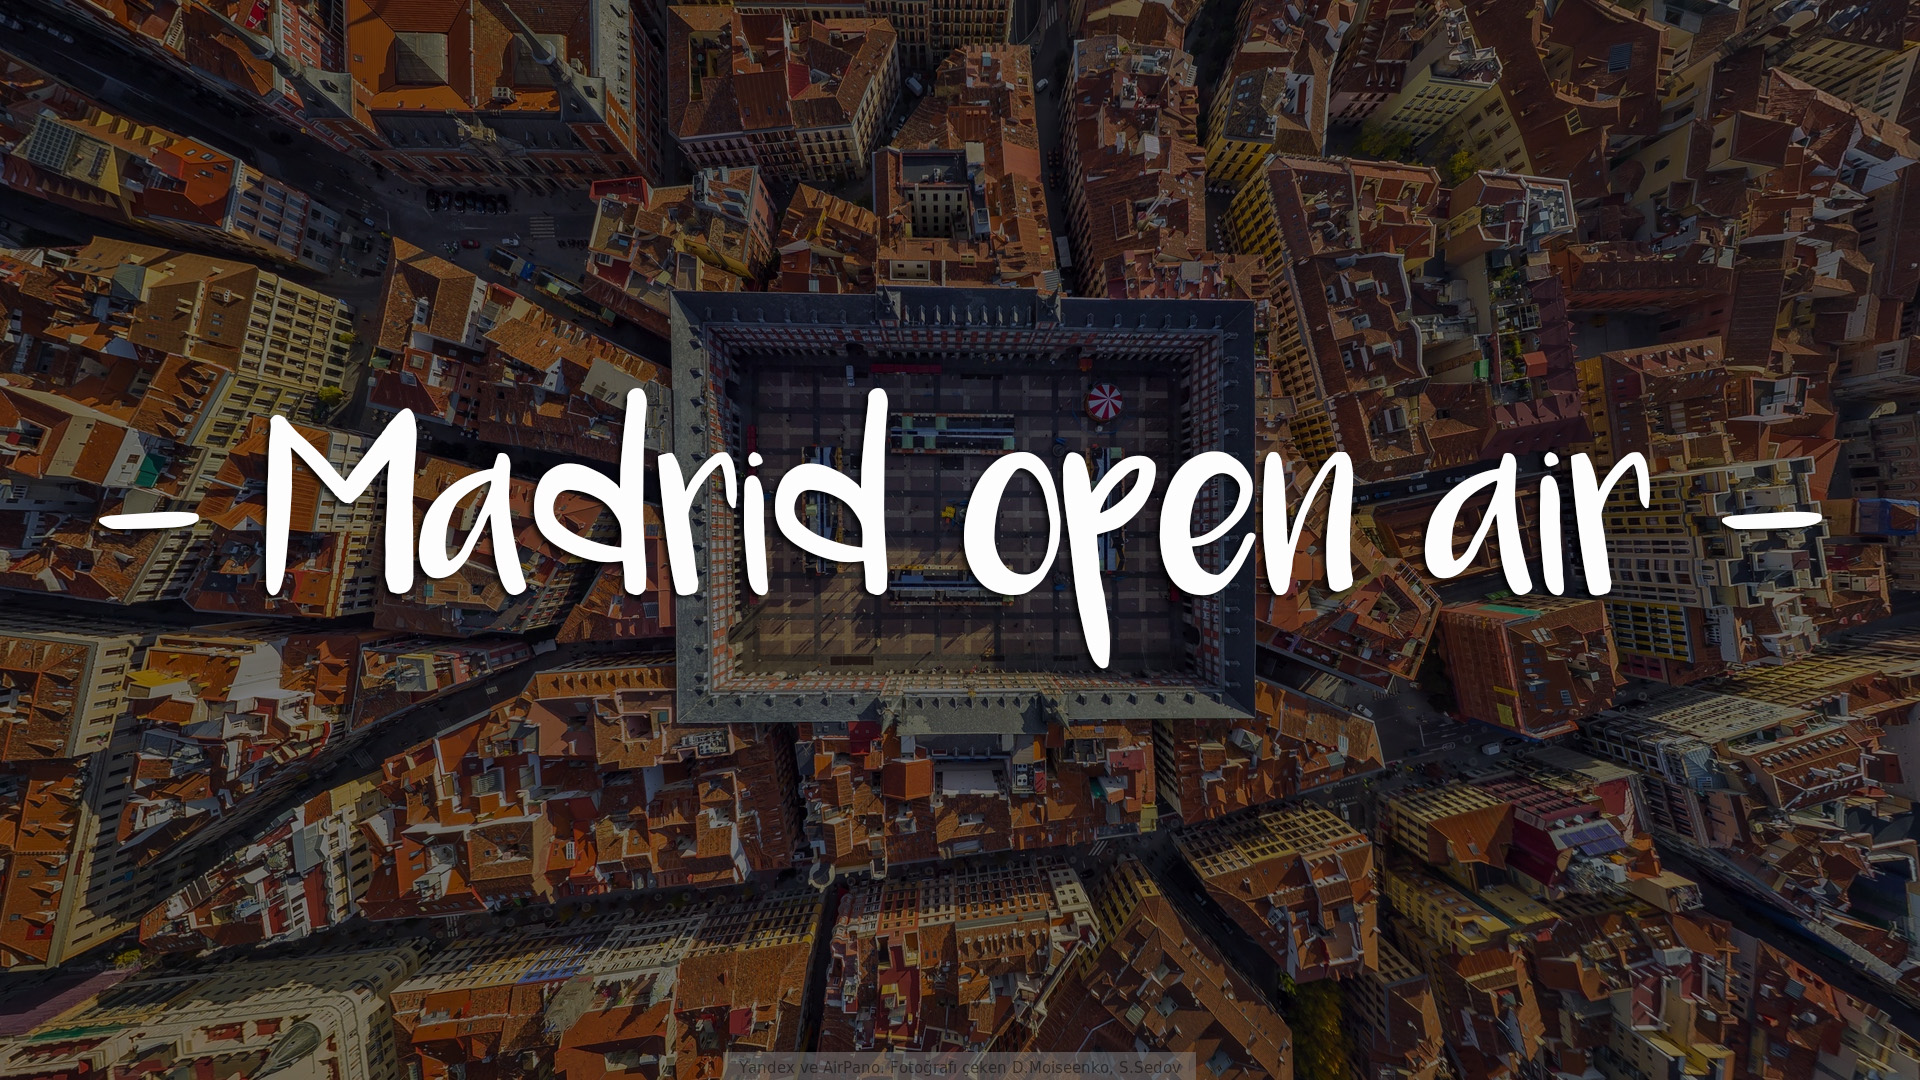 Madrid City Tour ... Open Air